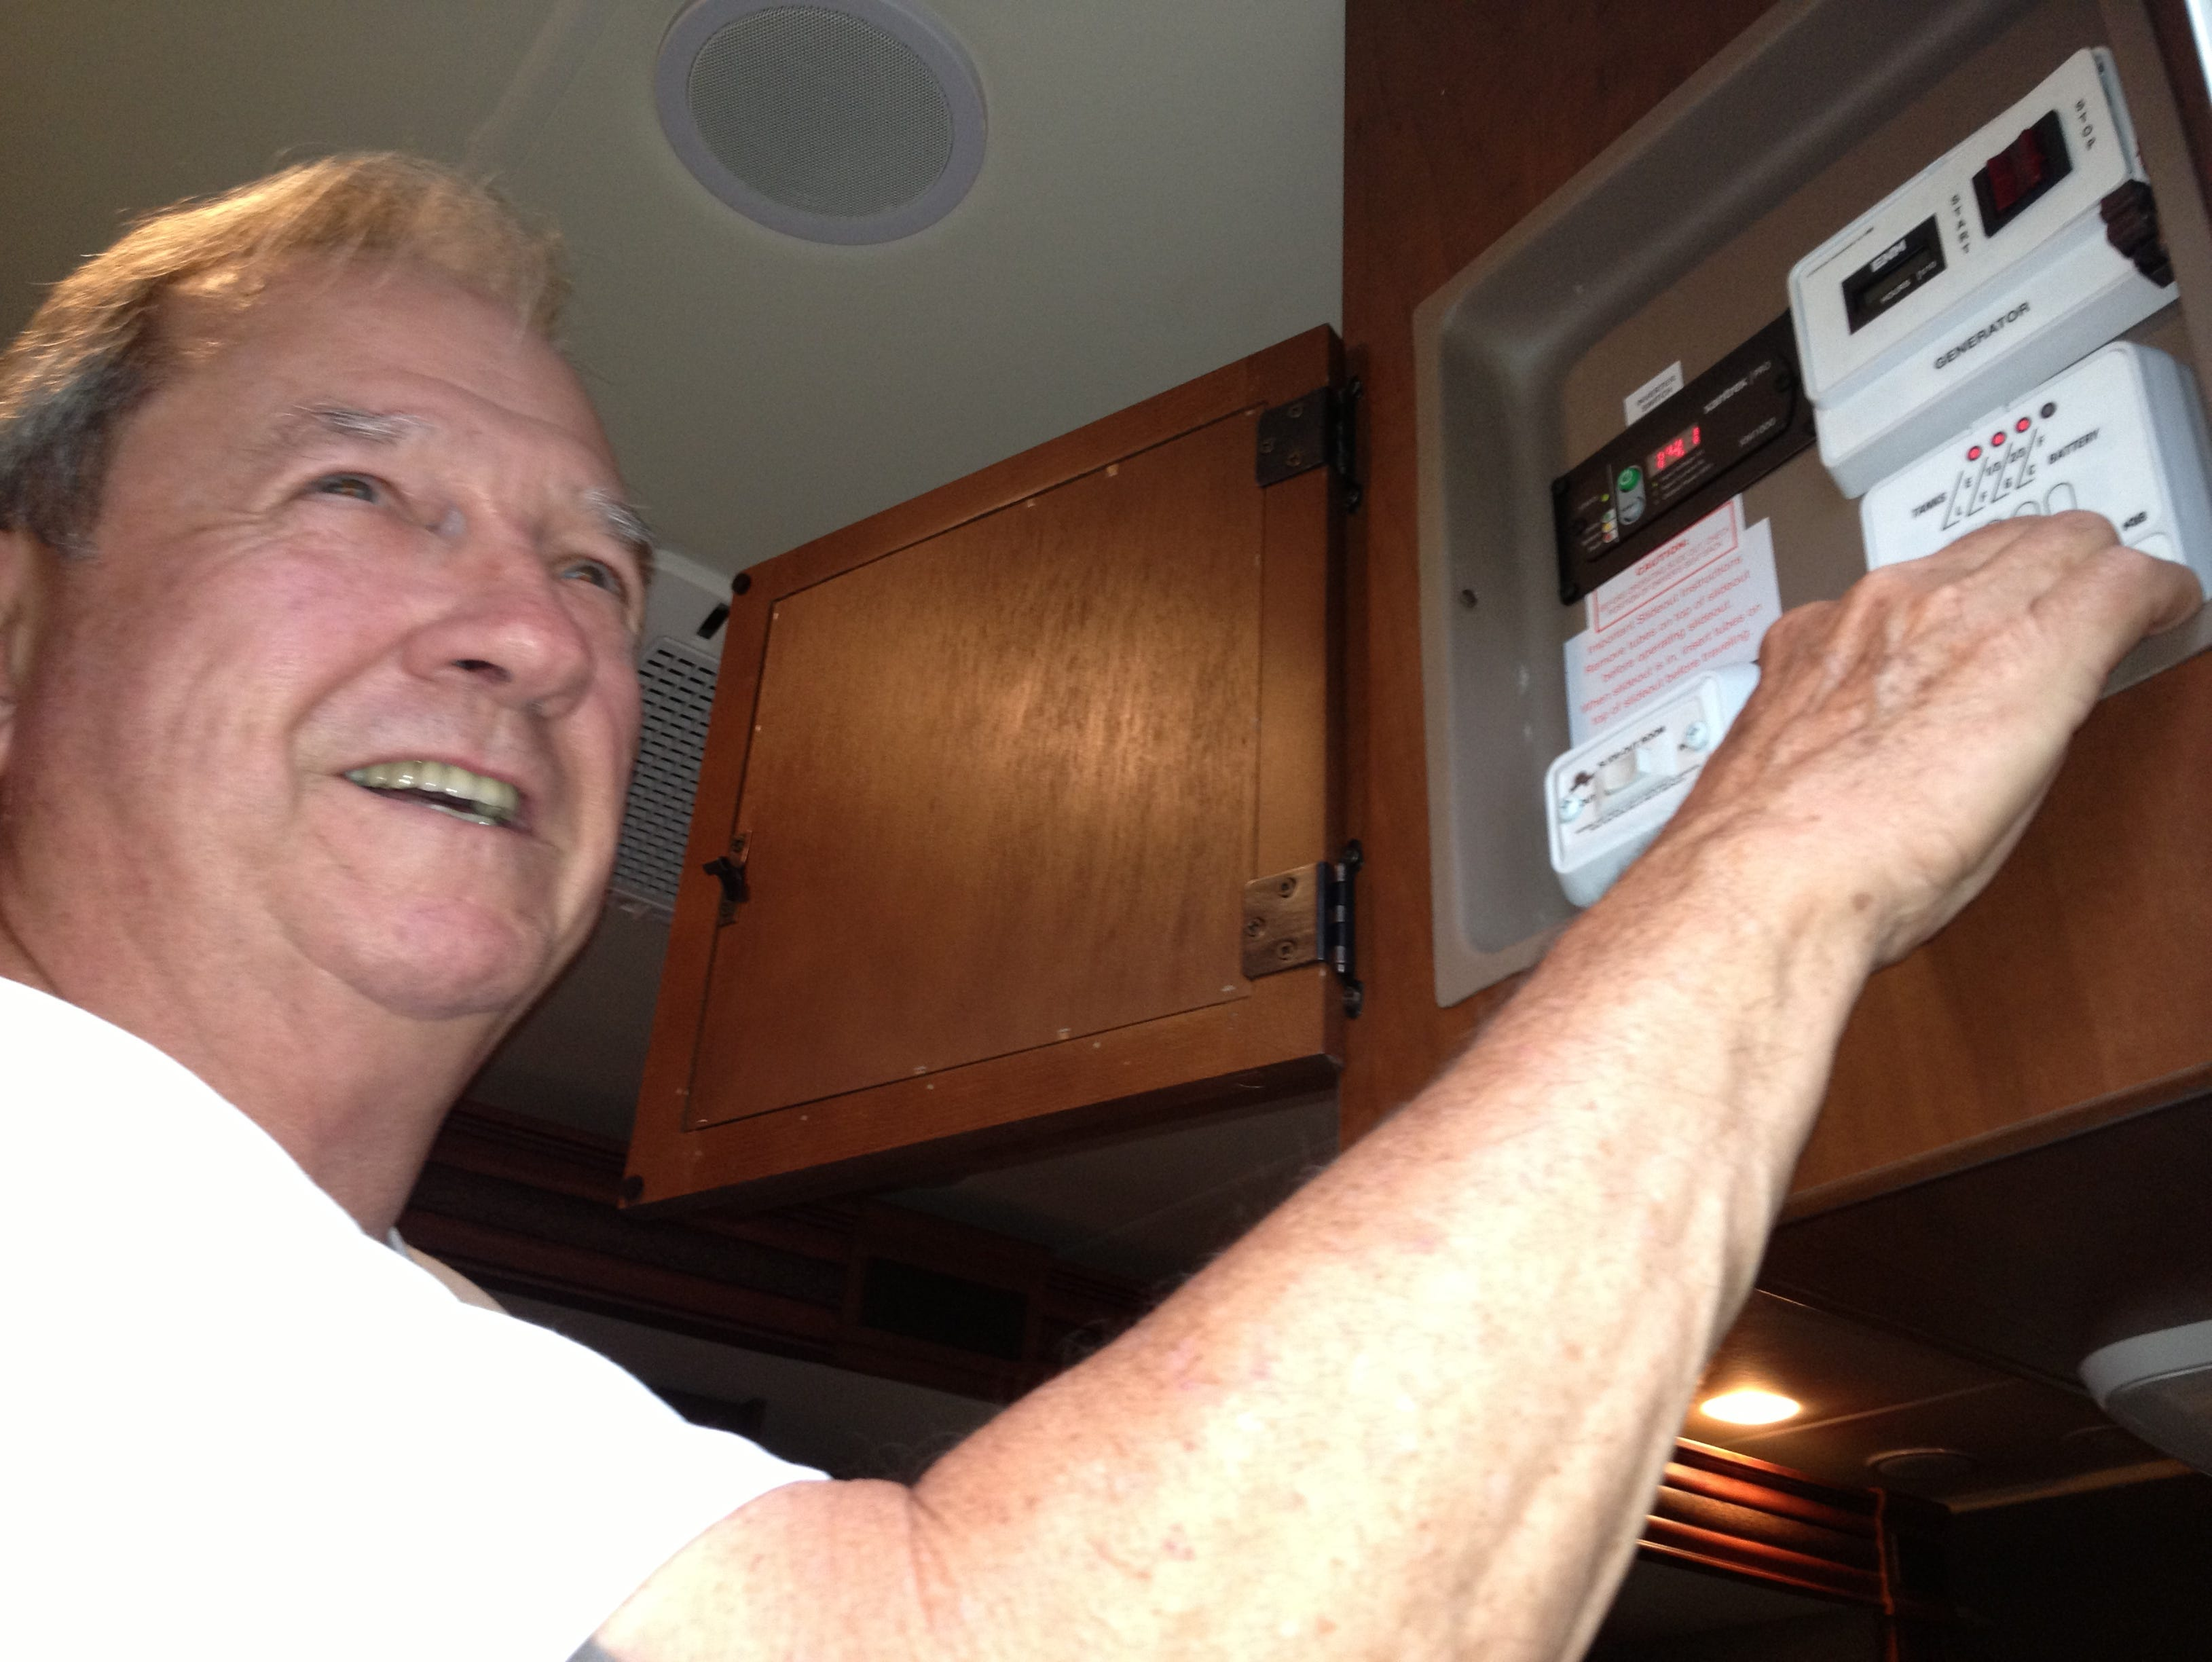 Twin Oaks guest Larry Smith checks the water-tank levels on the RV and gives O'Donnell a primer on how to decipher and work the control panels.